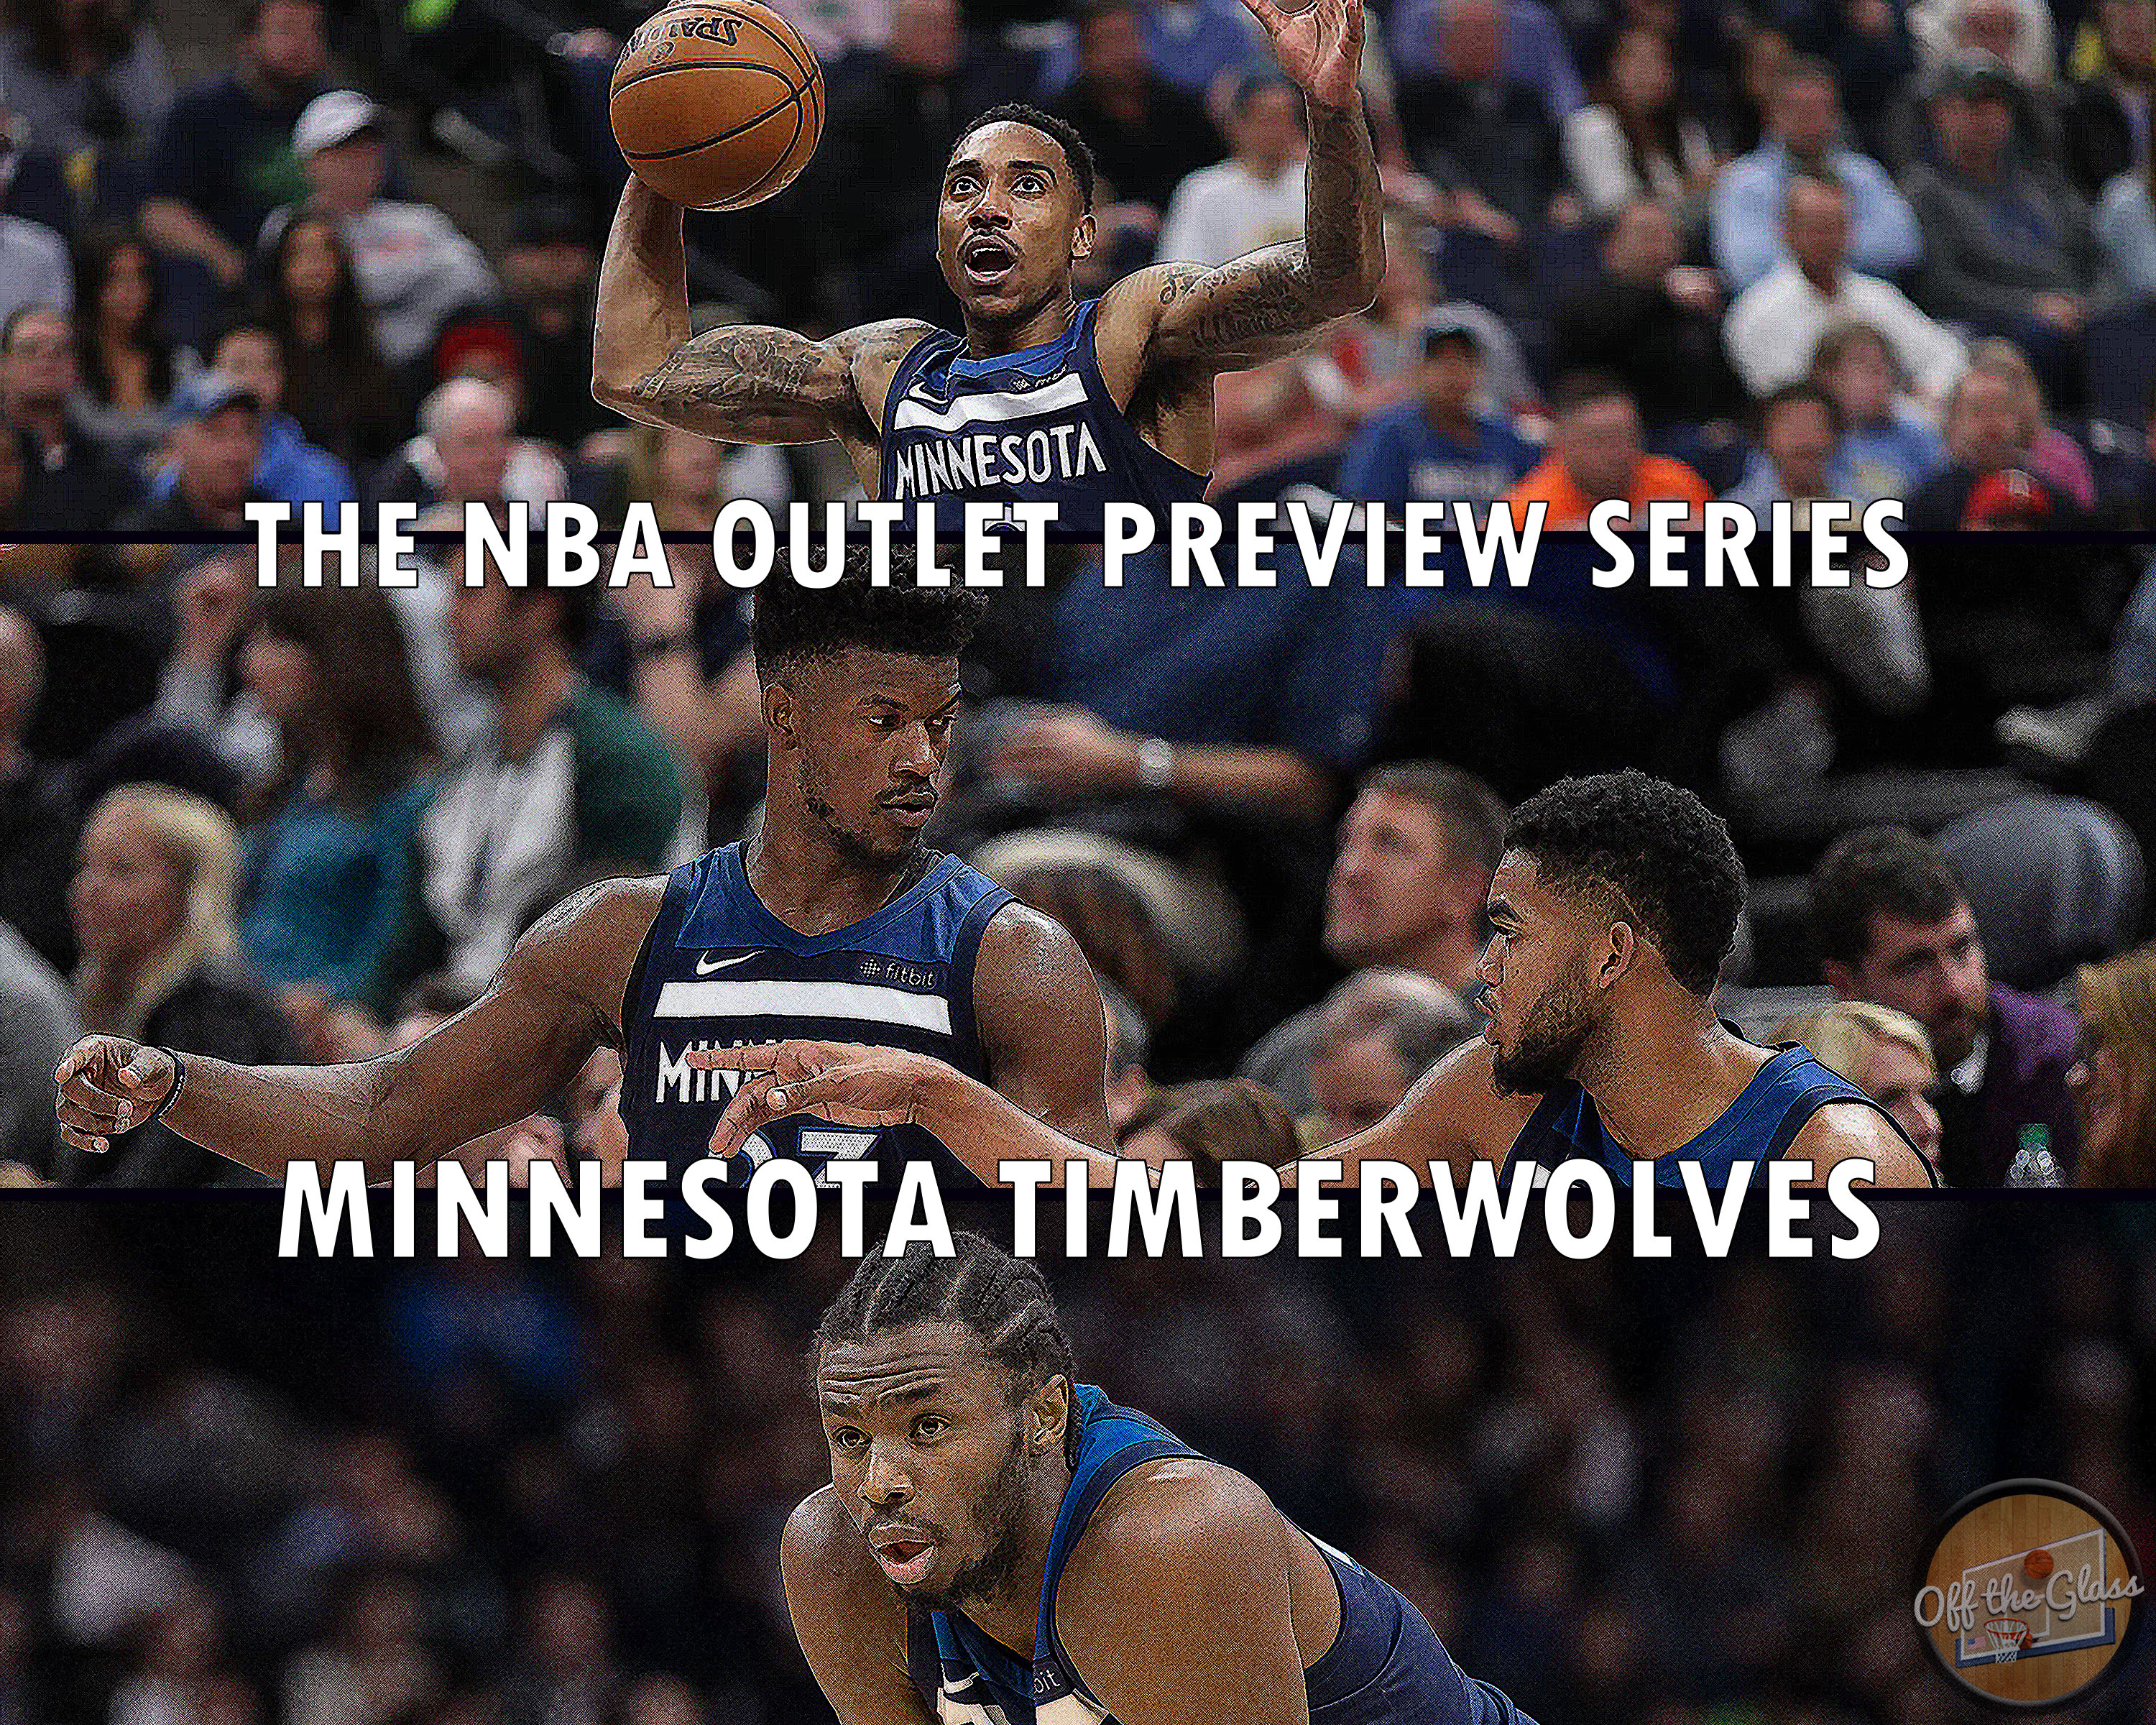 The 2018-19 NBA Outlet Preview Series  Minnesota Timberwolves  ac05267b2